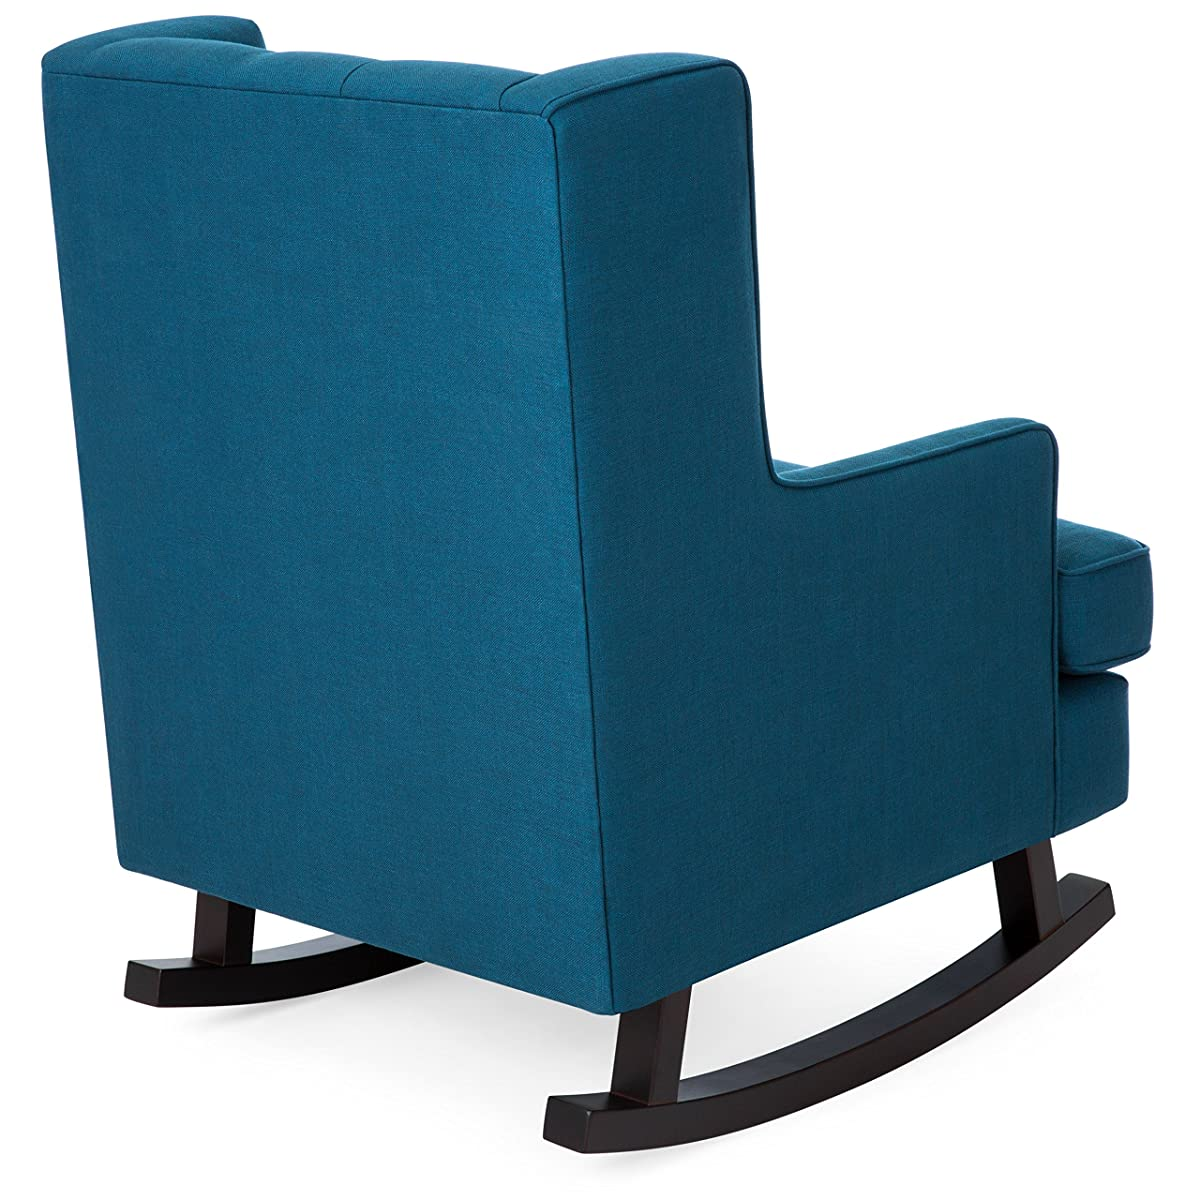 Rocking Accent Chairs Best Choice Products Tufted Upholstered Wingback Rocking Accent